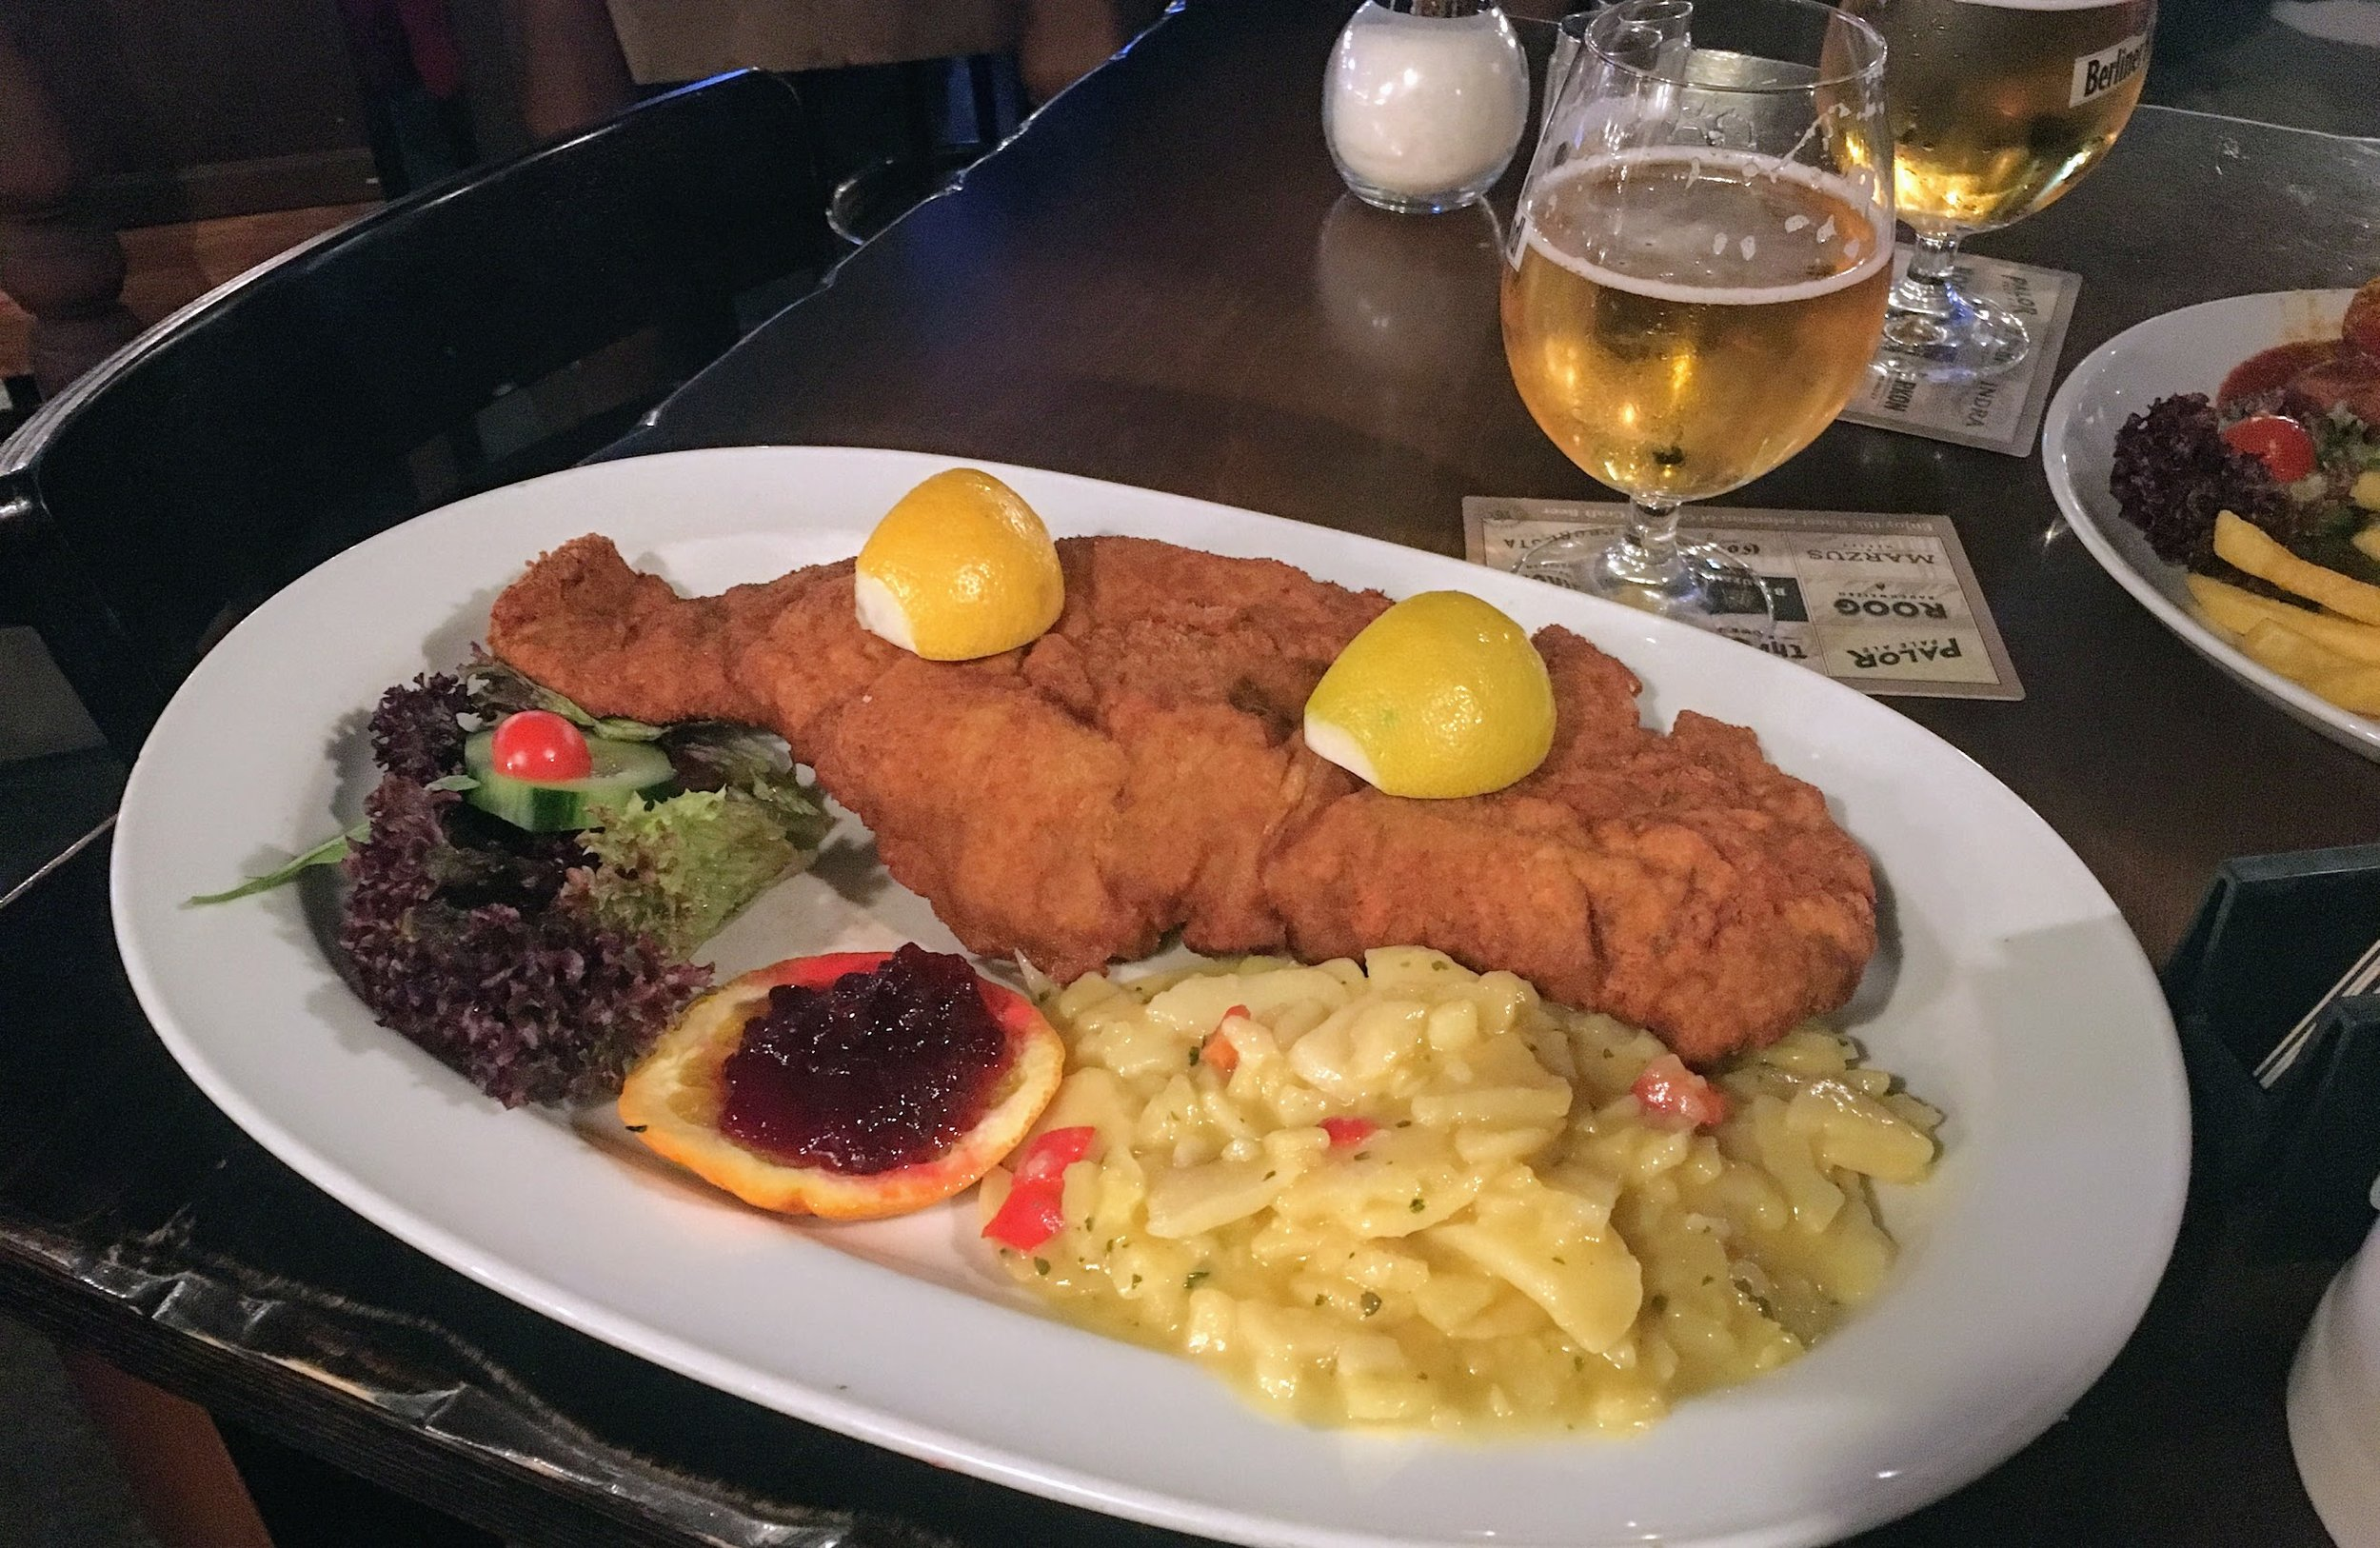 Berliner Kindl and Veal Schnitzel, Berlin, Germany